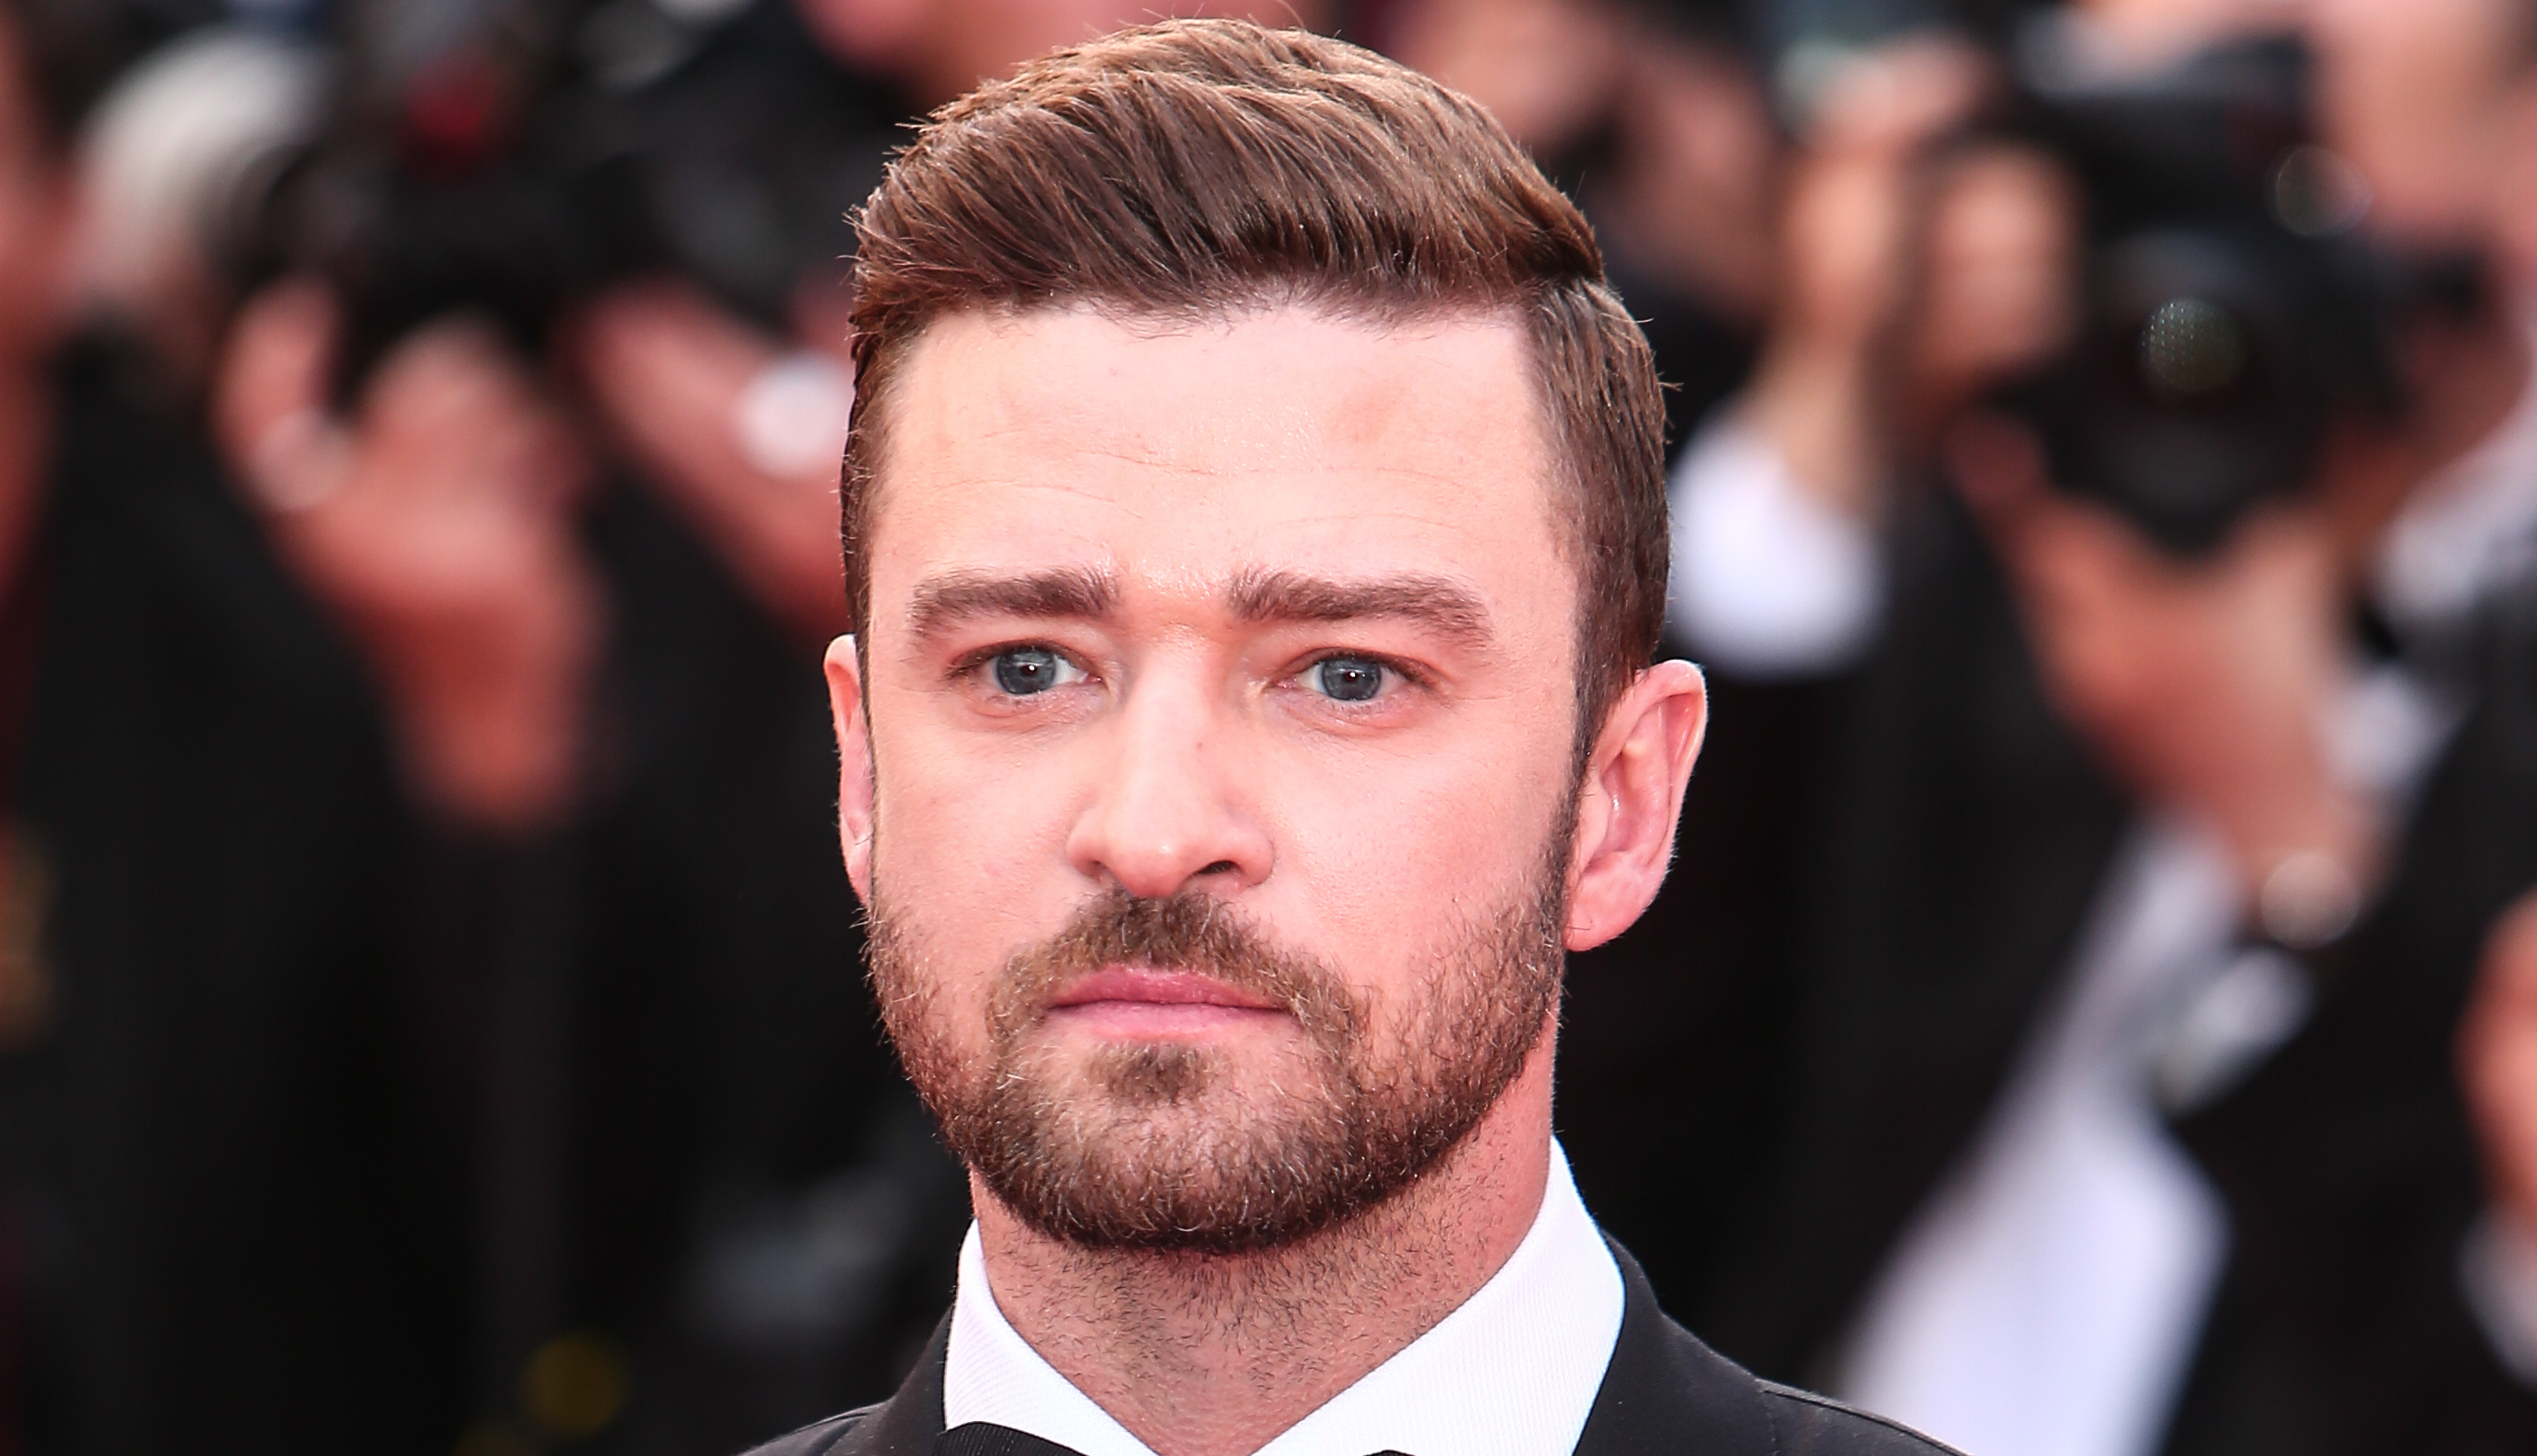 Justin Timberlake Could Go to Jail for Posting This Voting Instagram